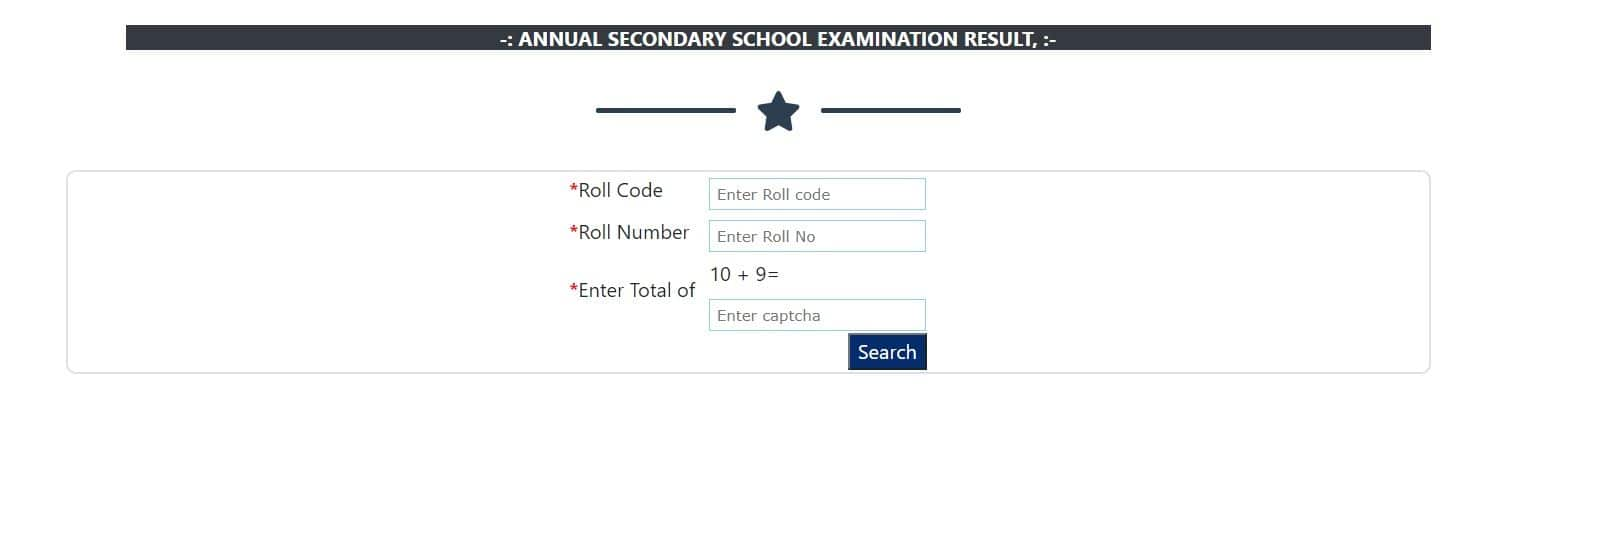 BSEB to Declare Matric Results Shortly, Official Website Showing Error